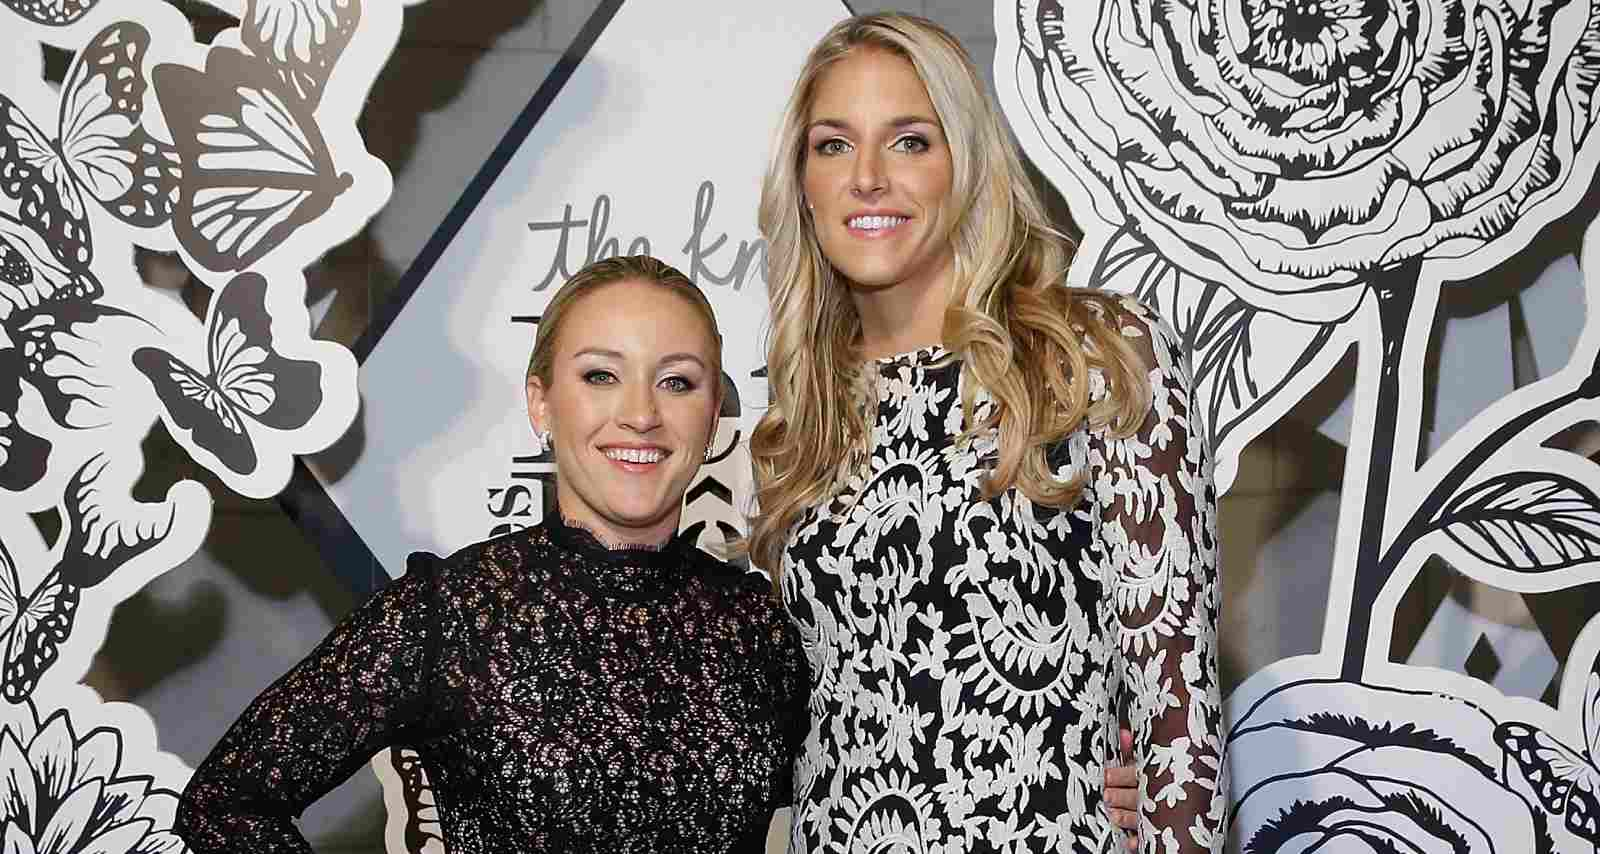 Amid messy situation with Elena Delle Donne and WNBA, Mystics eye adjustments